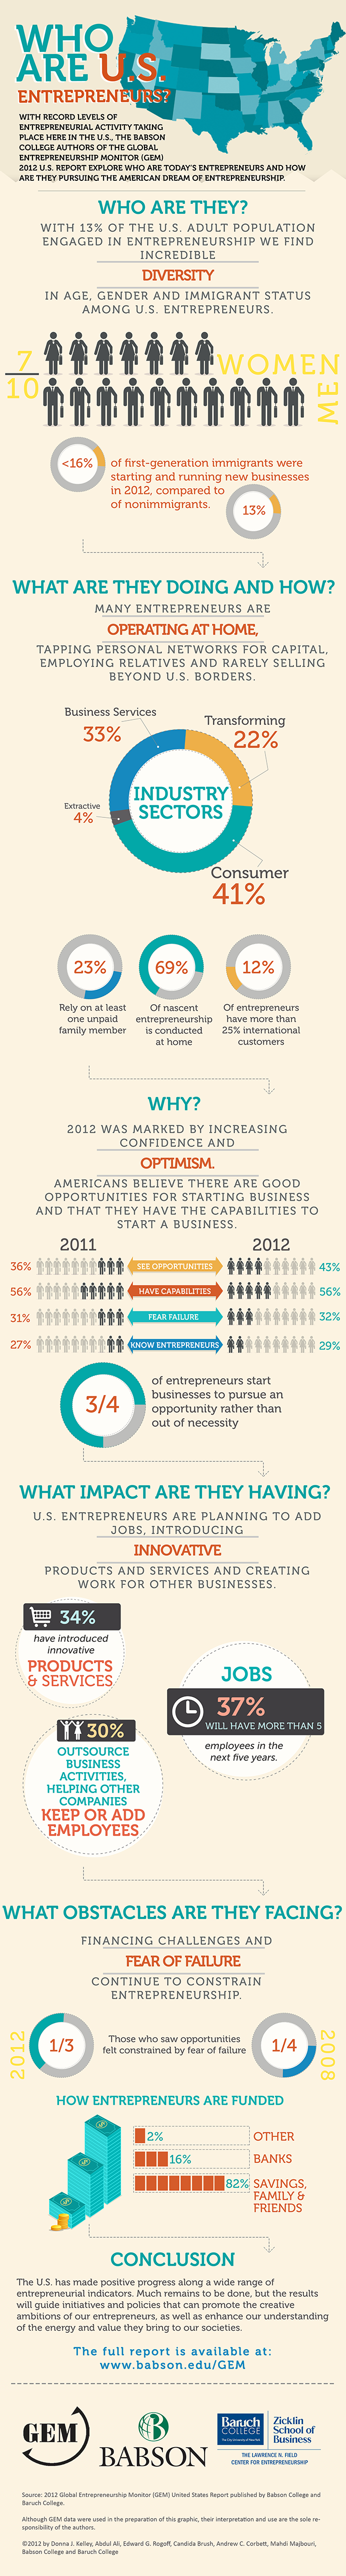 Who are US entrepreneurs?